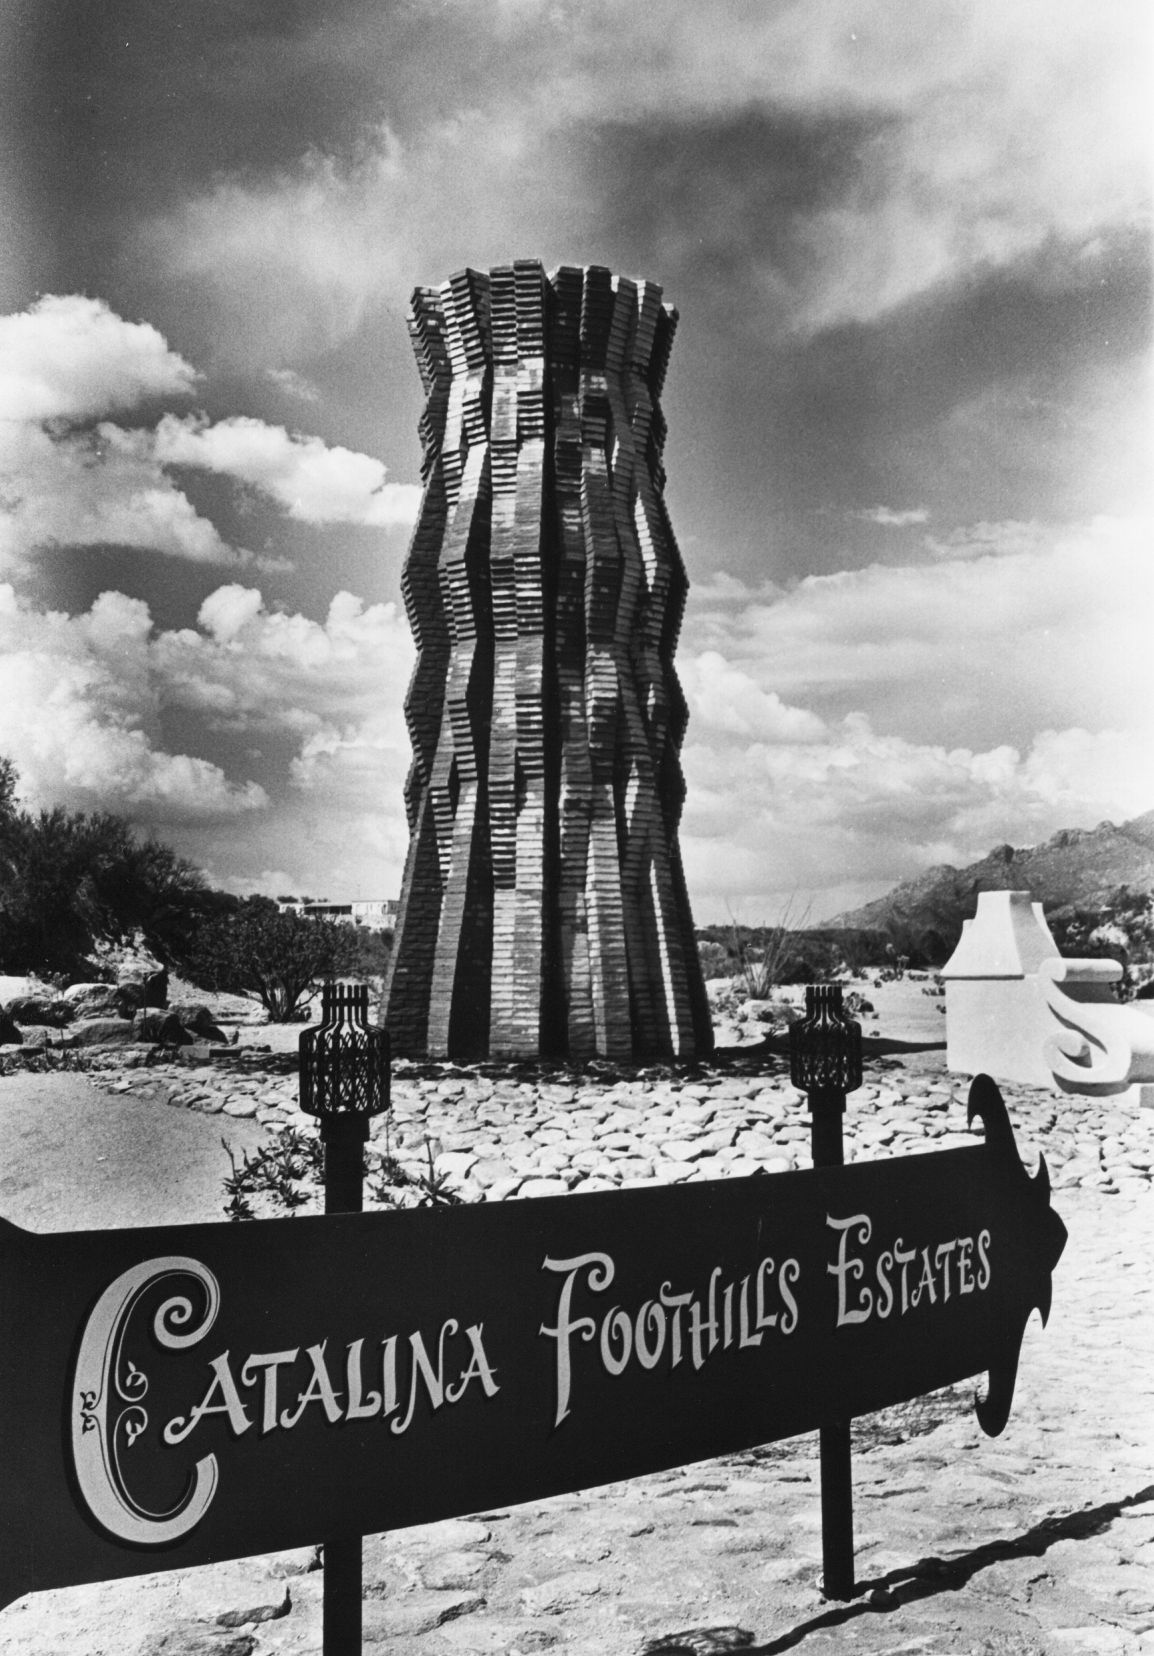 Cool Tucson fountains in 1966